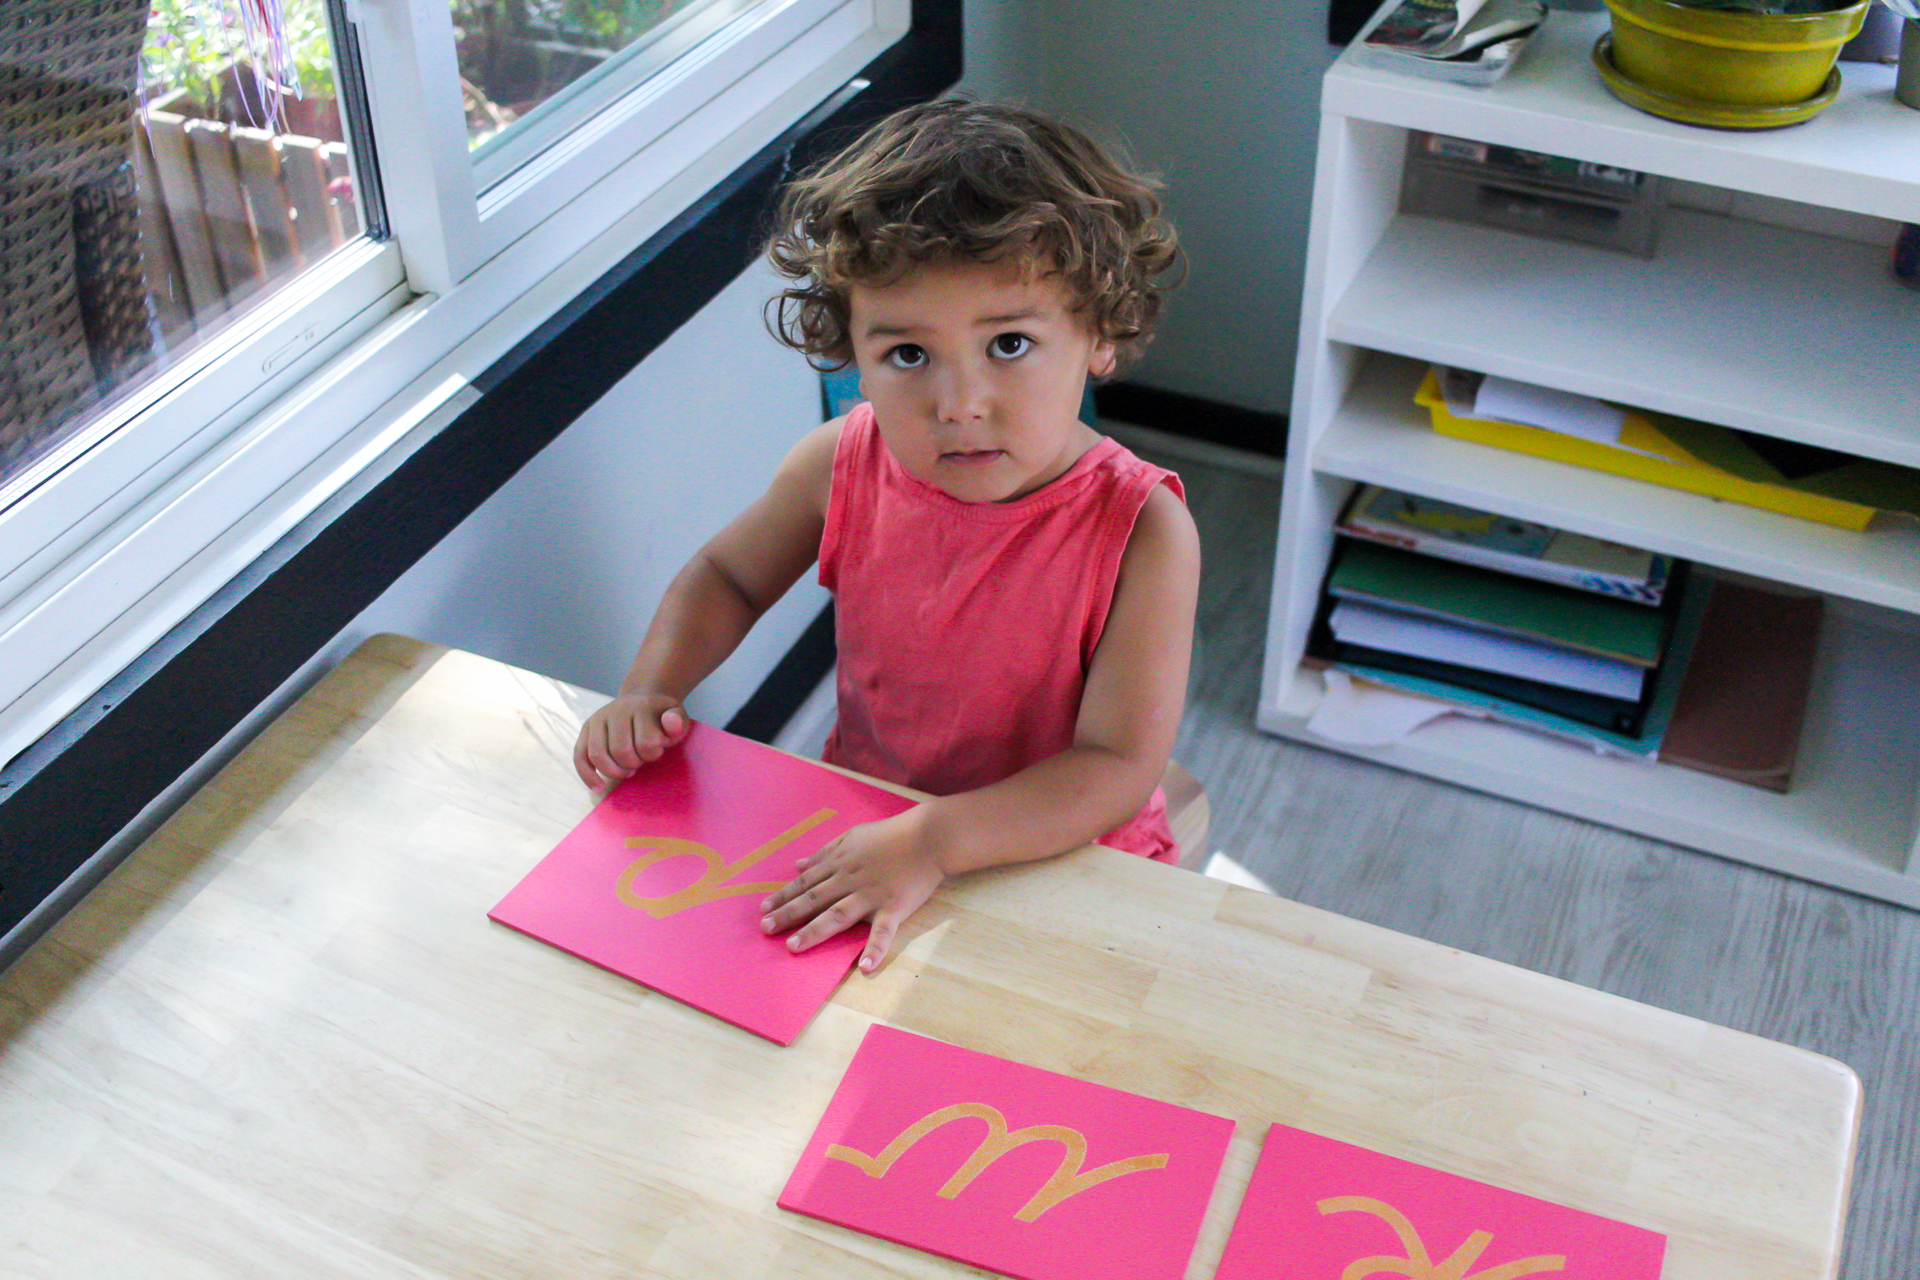 The sandpaper letters are a Montessori activity that can help your child learn the alphabet and start to read.